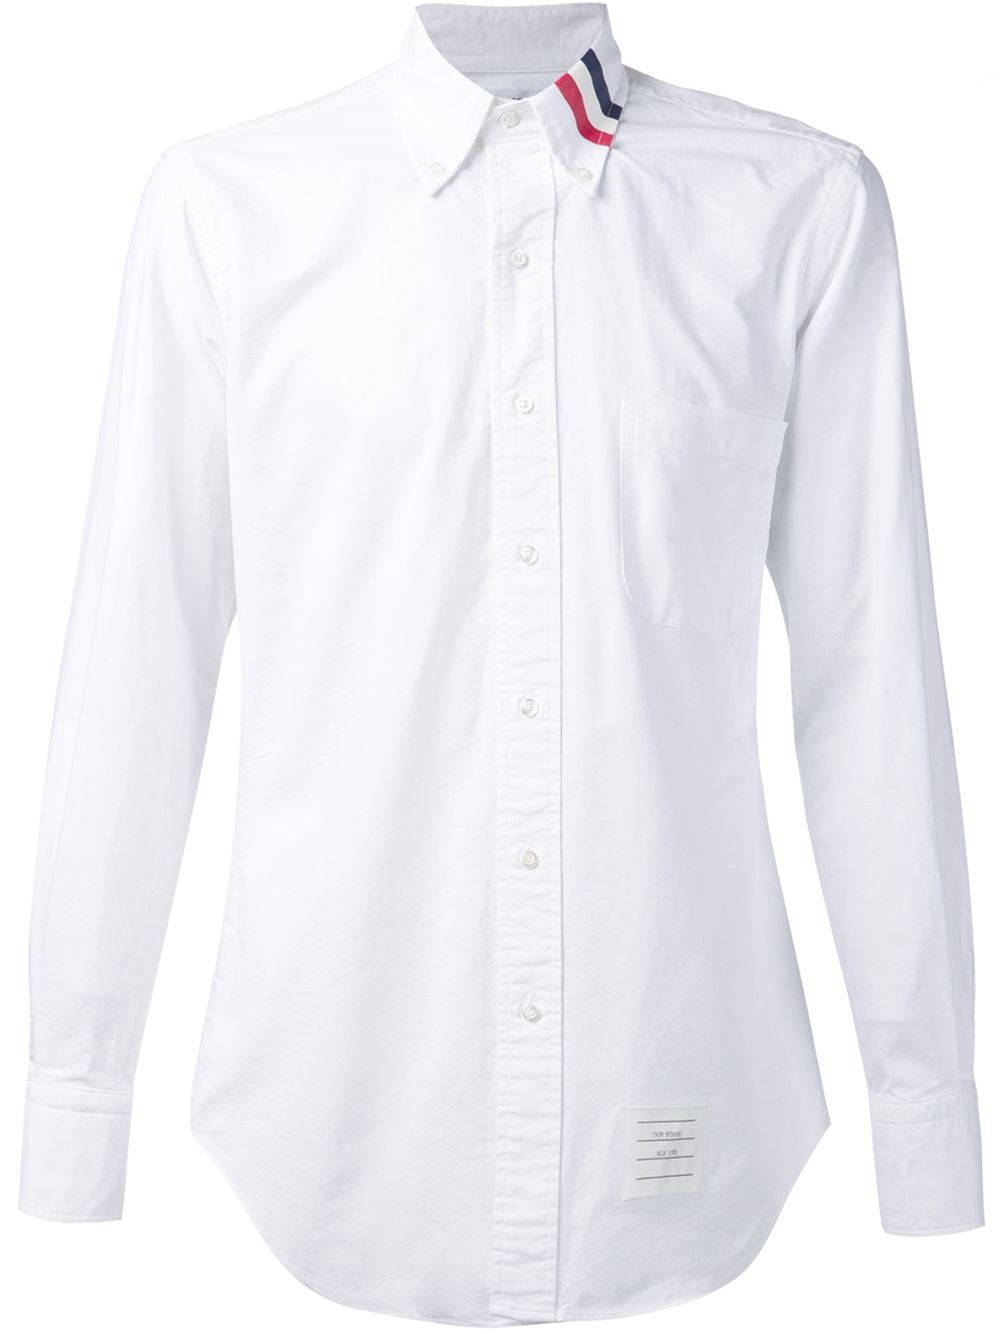 Thom browne striped collar shirt in white for men lyst for Thom browne white shirt